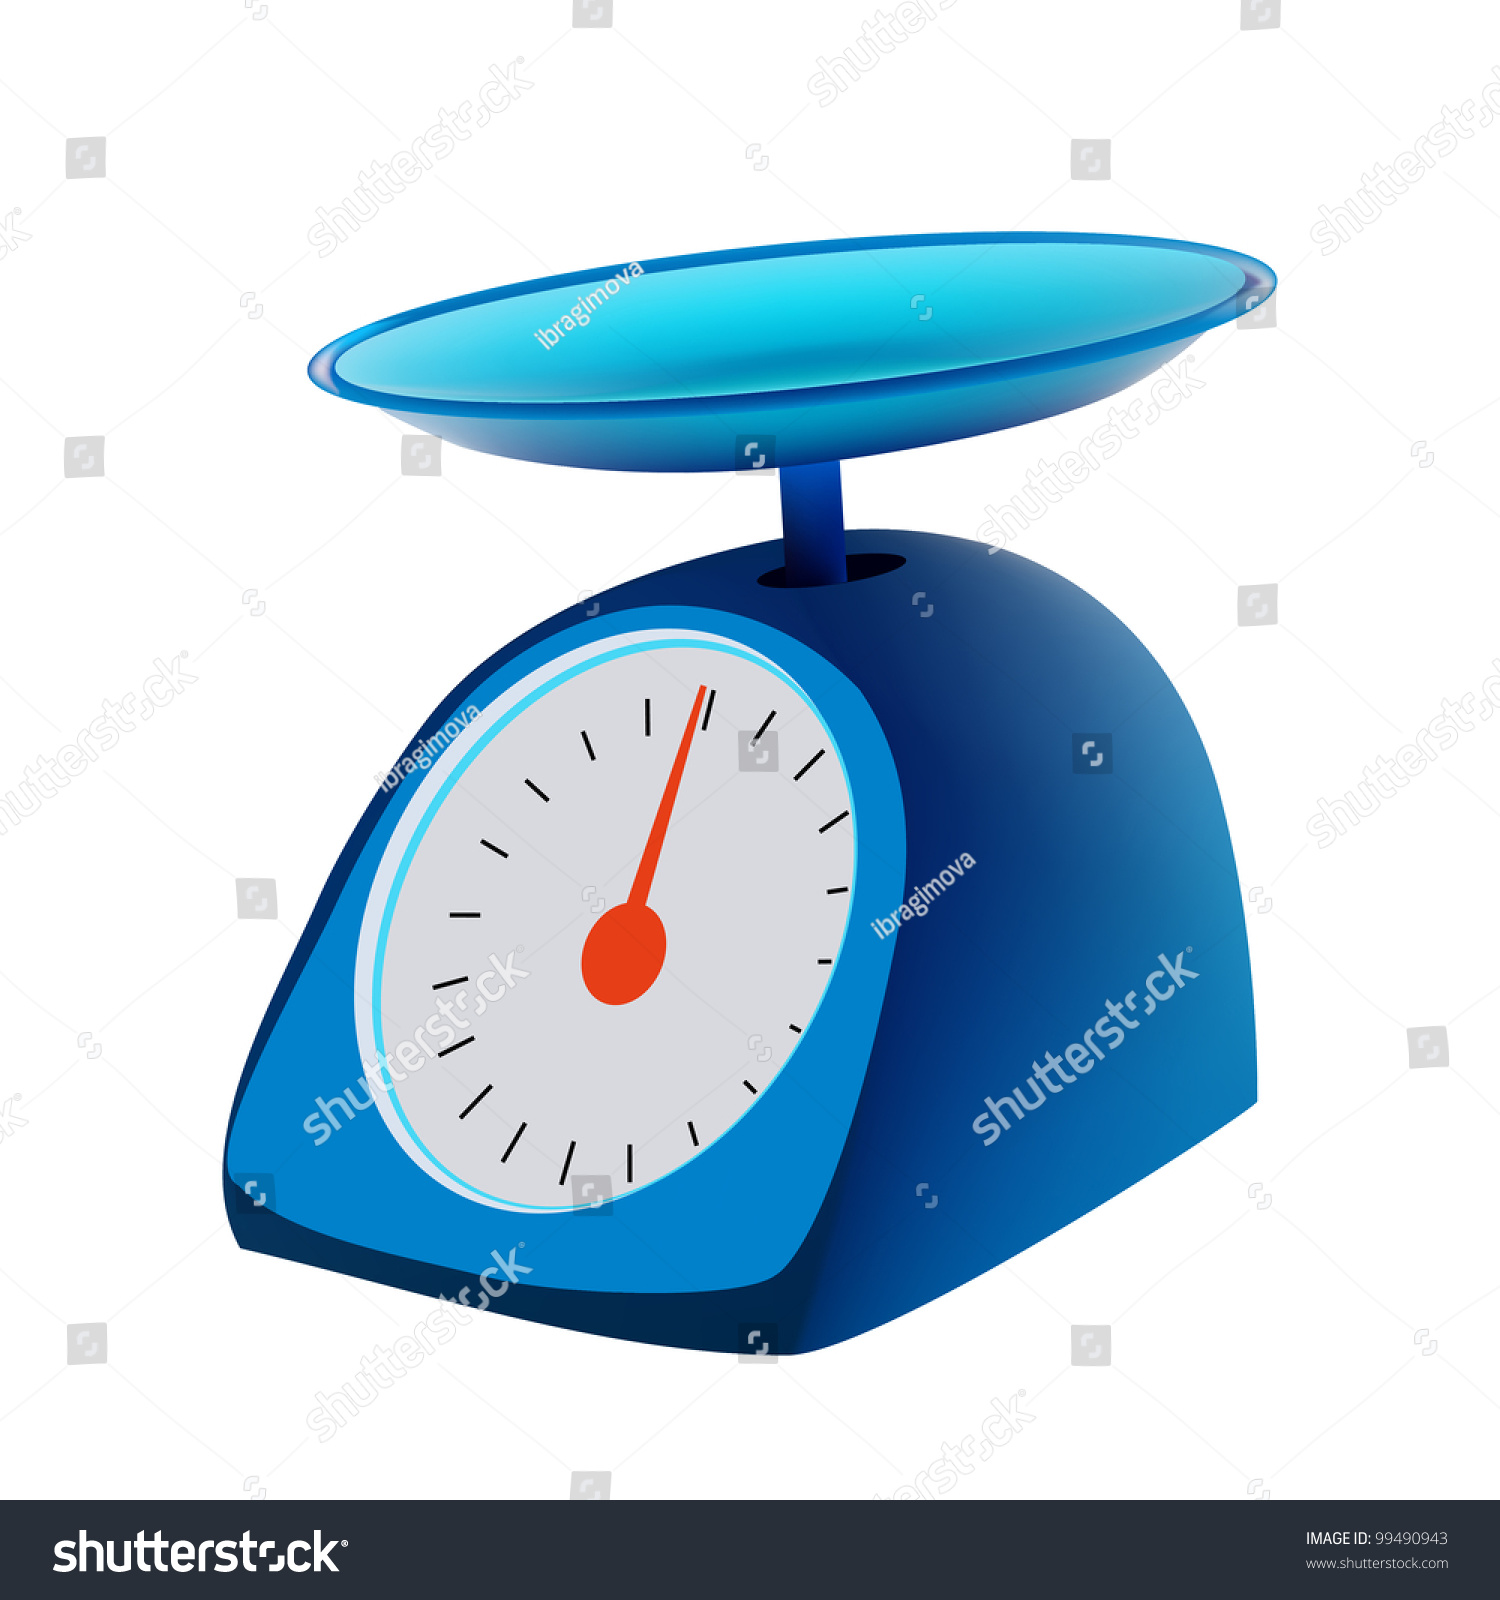 Blue Kitchen Scales: Blue Kitchen Scales Isolated Stock Vector Illustration